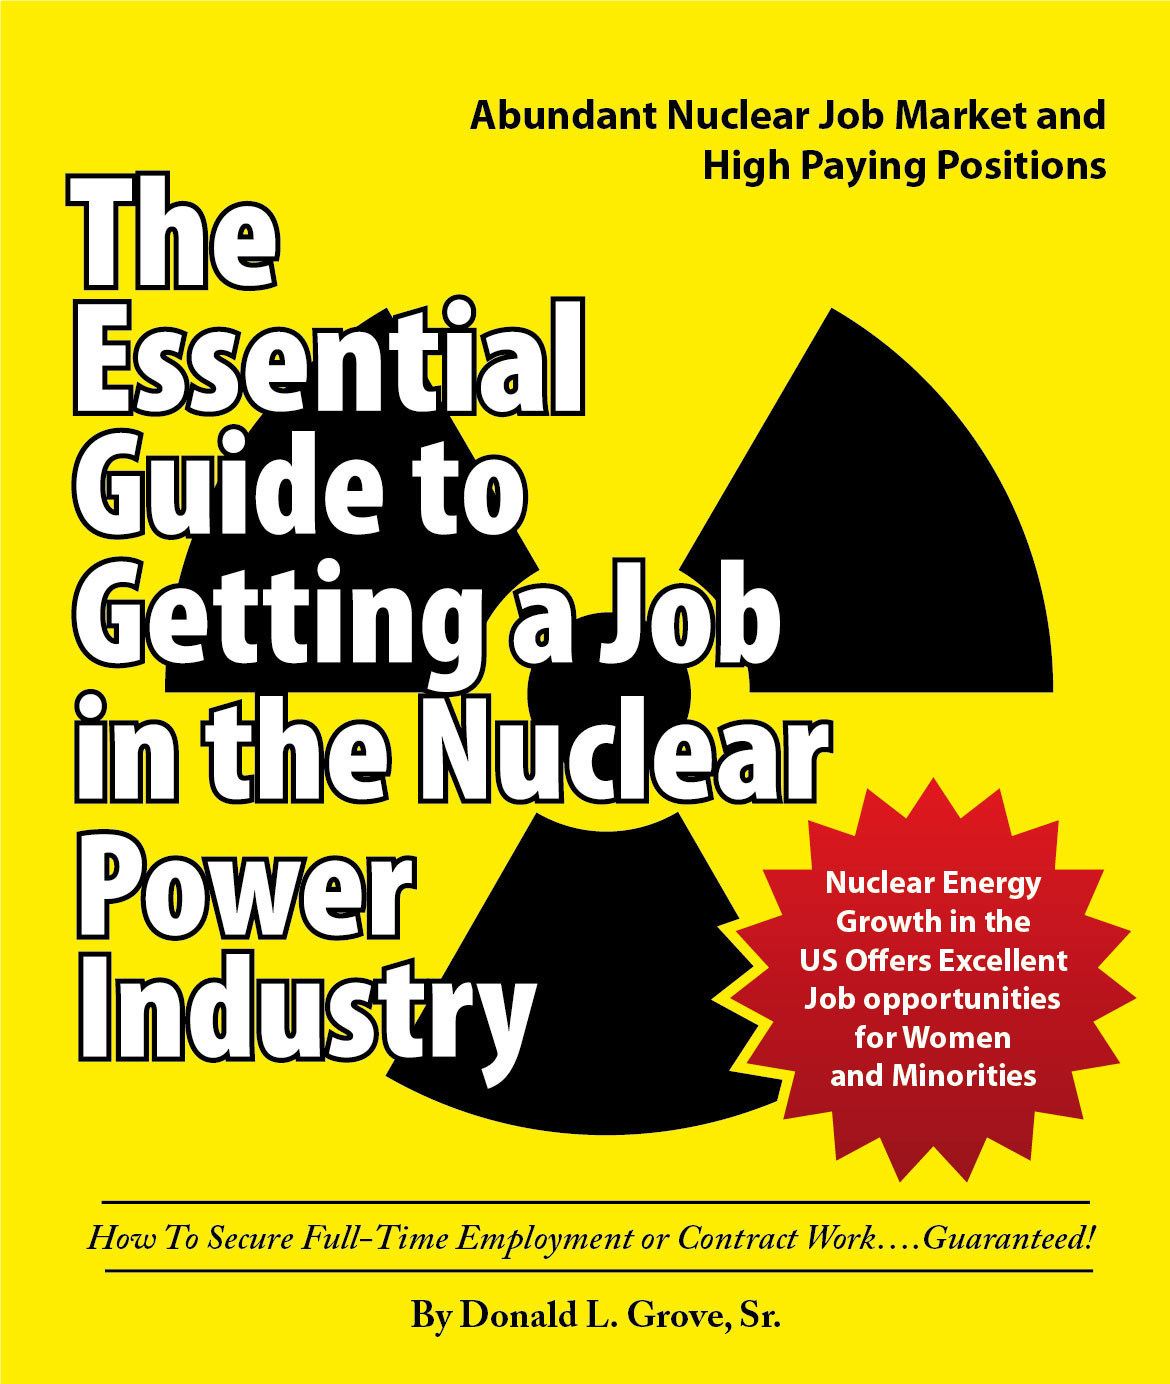 Donald Grove Releases 'The Essential Guide to Getting a Job in the Nuclear Power Industry'